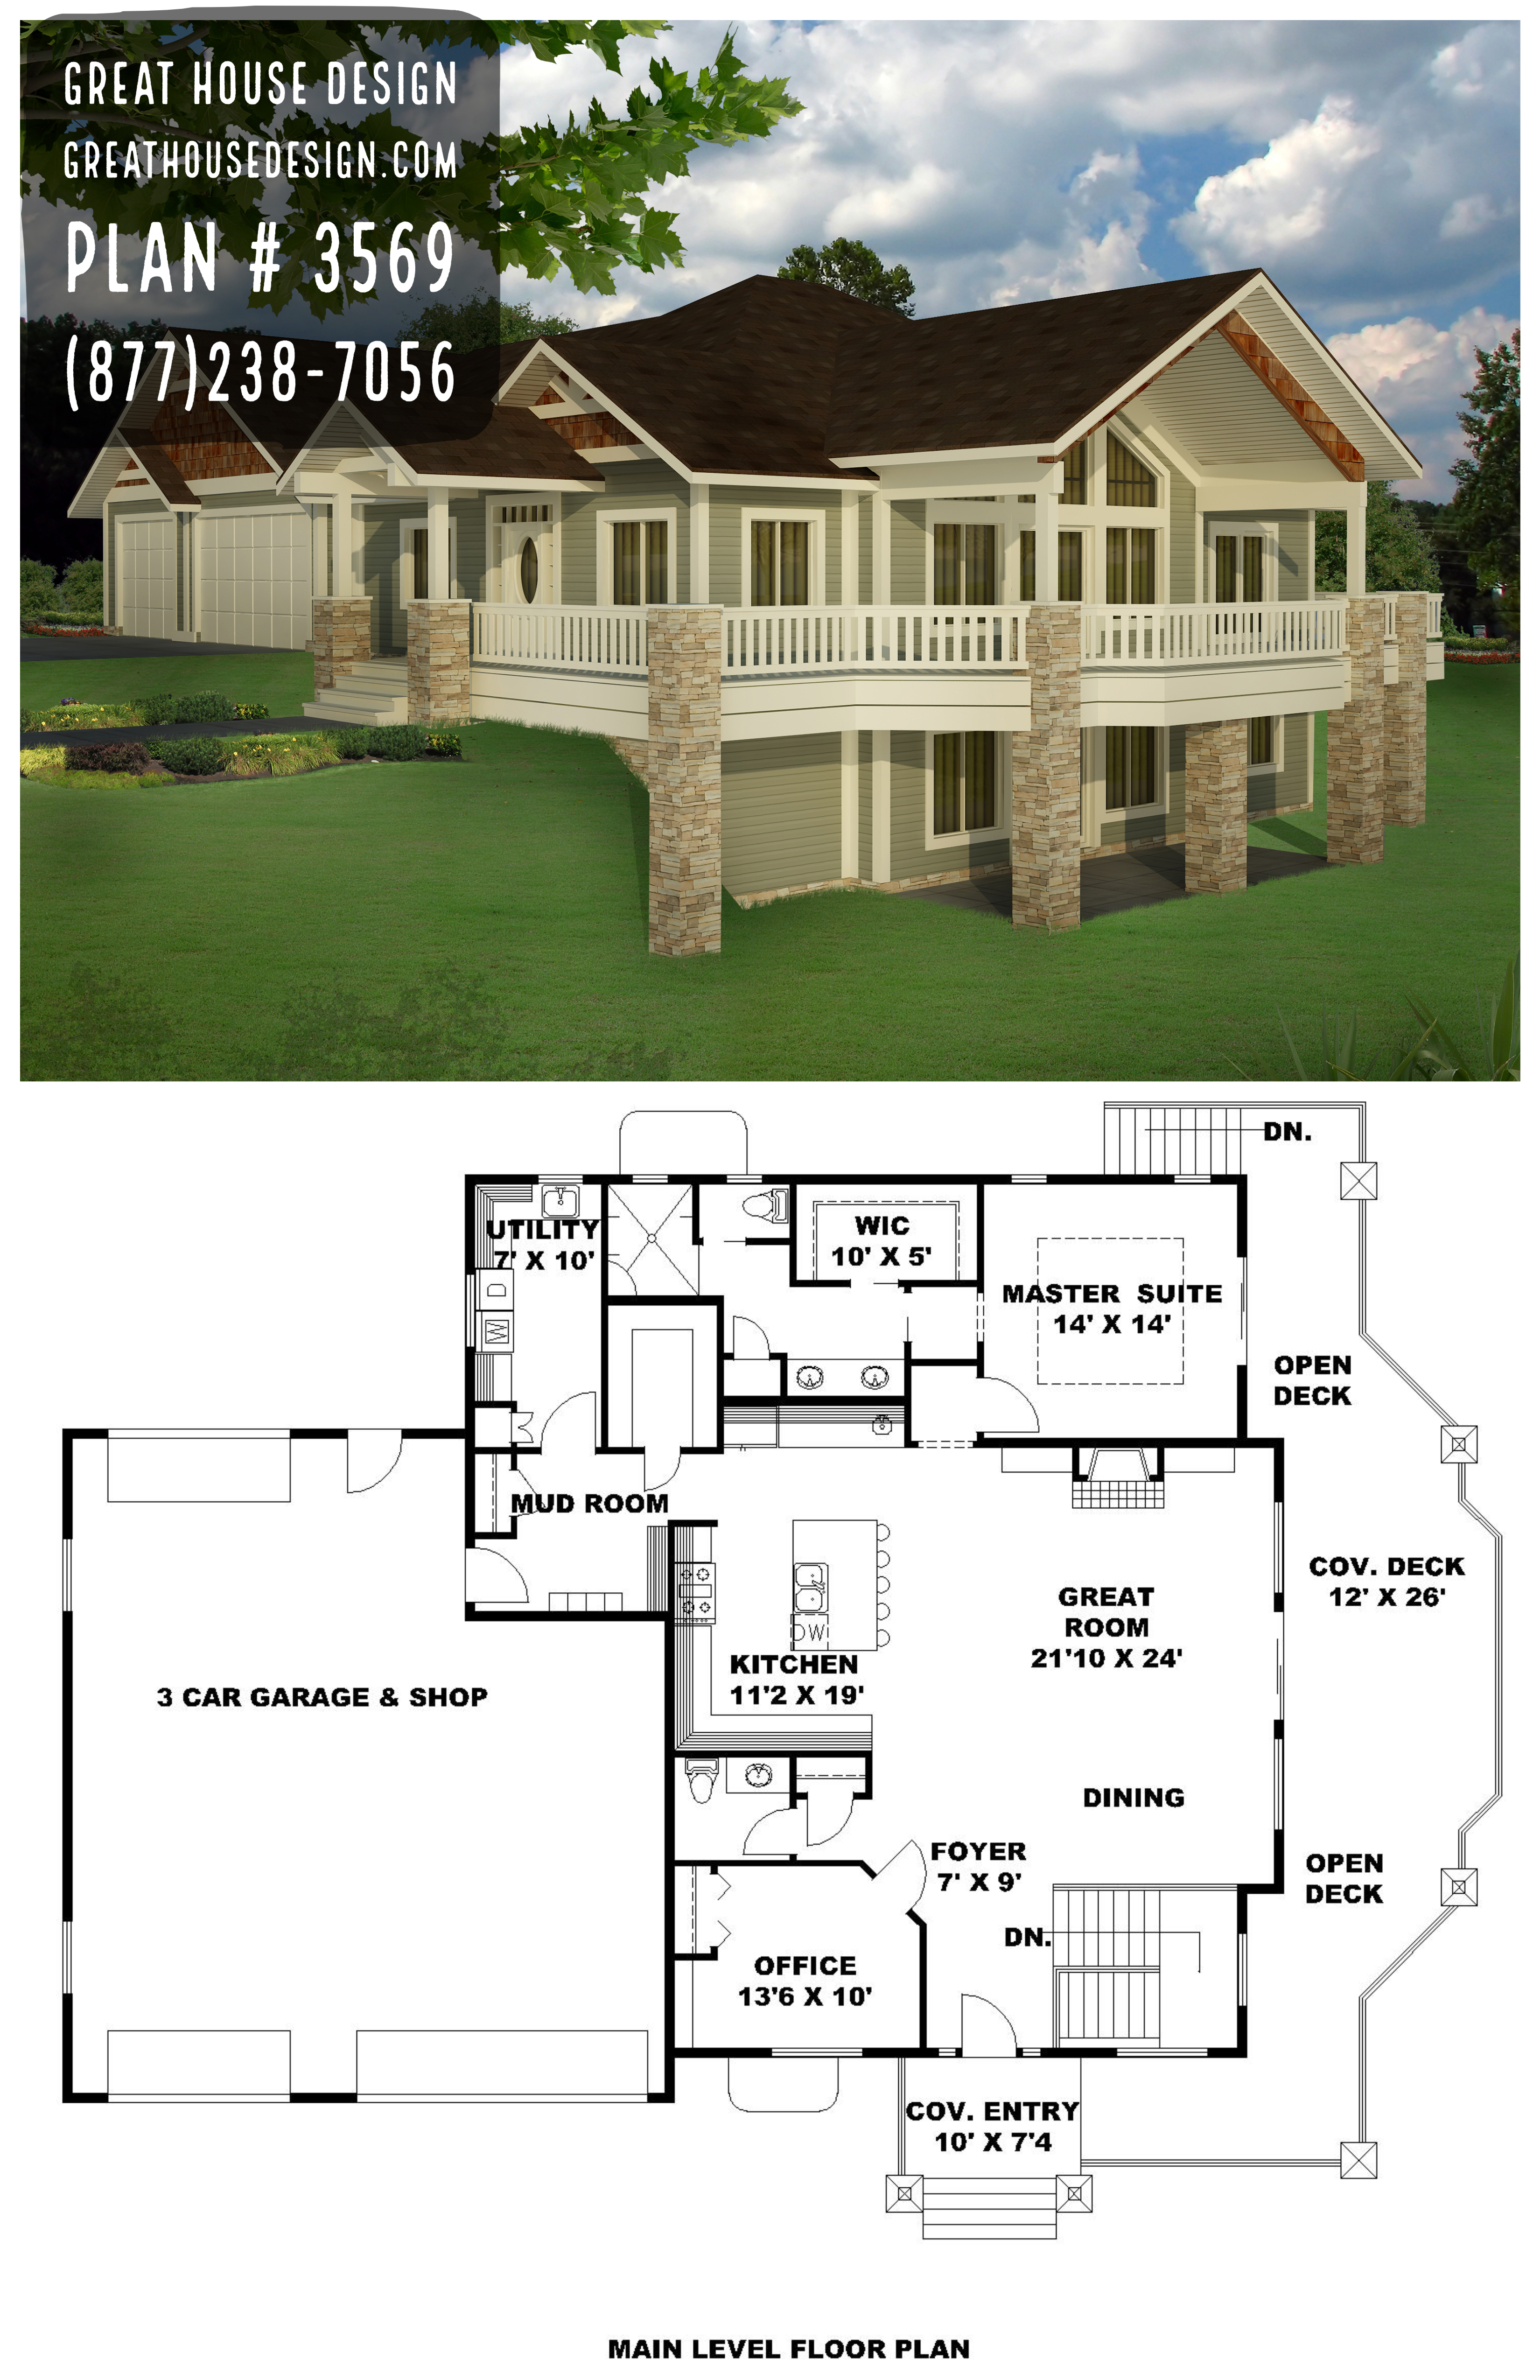 Home Plan 001 3569 Home Plan Great House Design Cottage Style House Plans Sims House Plans House Plans Farmhouse